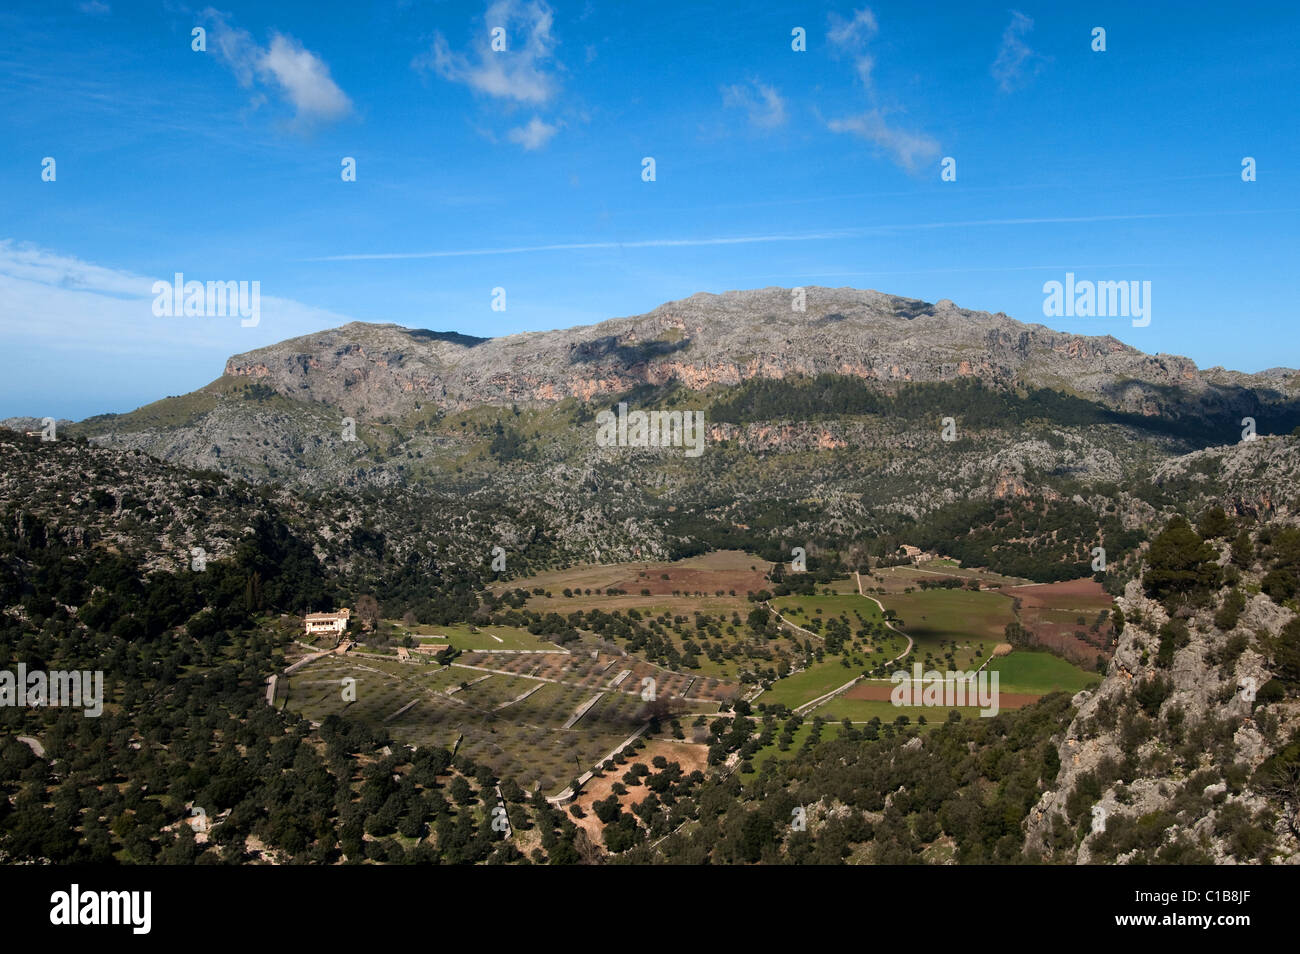 A view over the Serra de Tramuntana mountains from tophill Cloister Lluc, northern Mallorca, Spain 2011 - Stock Image